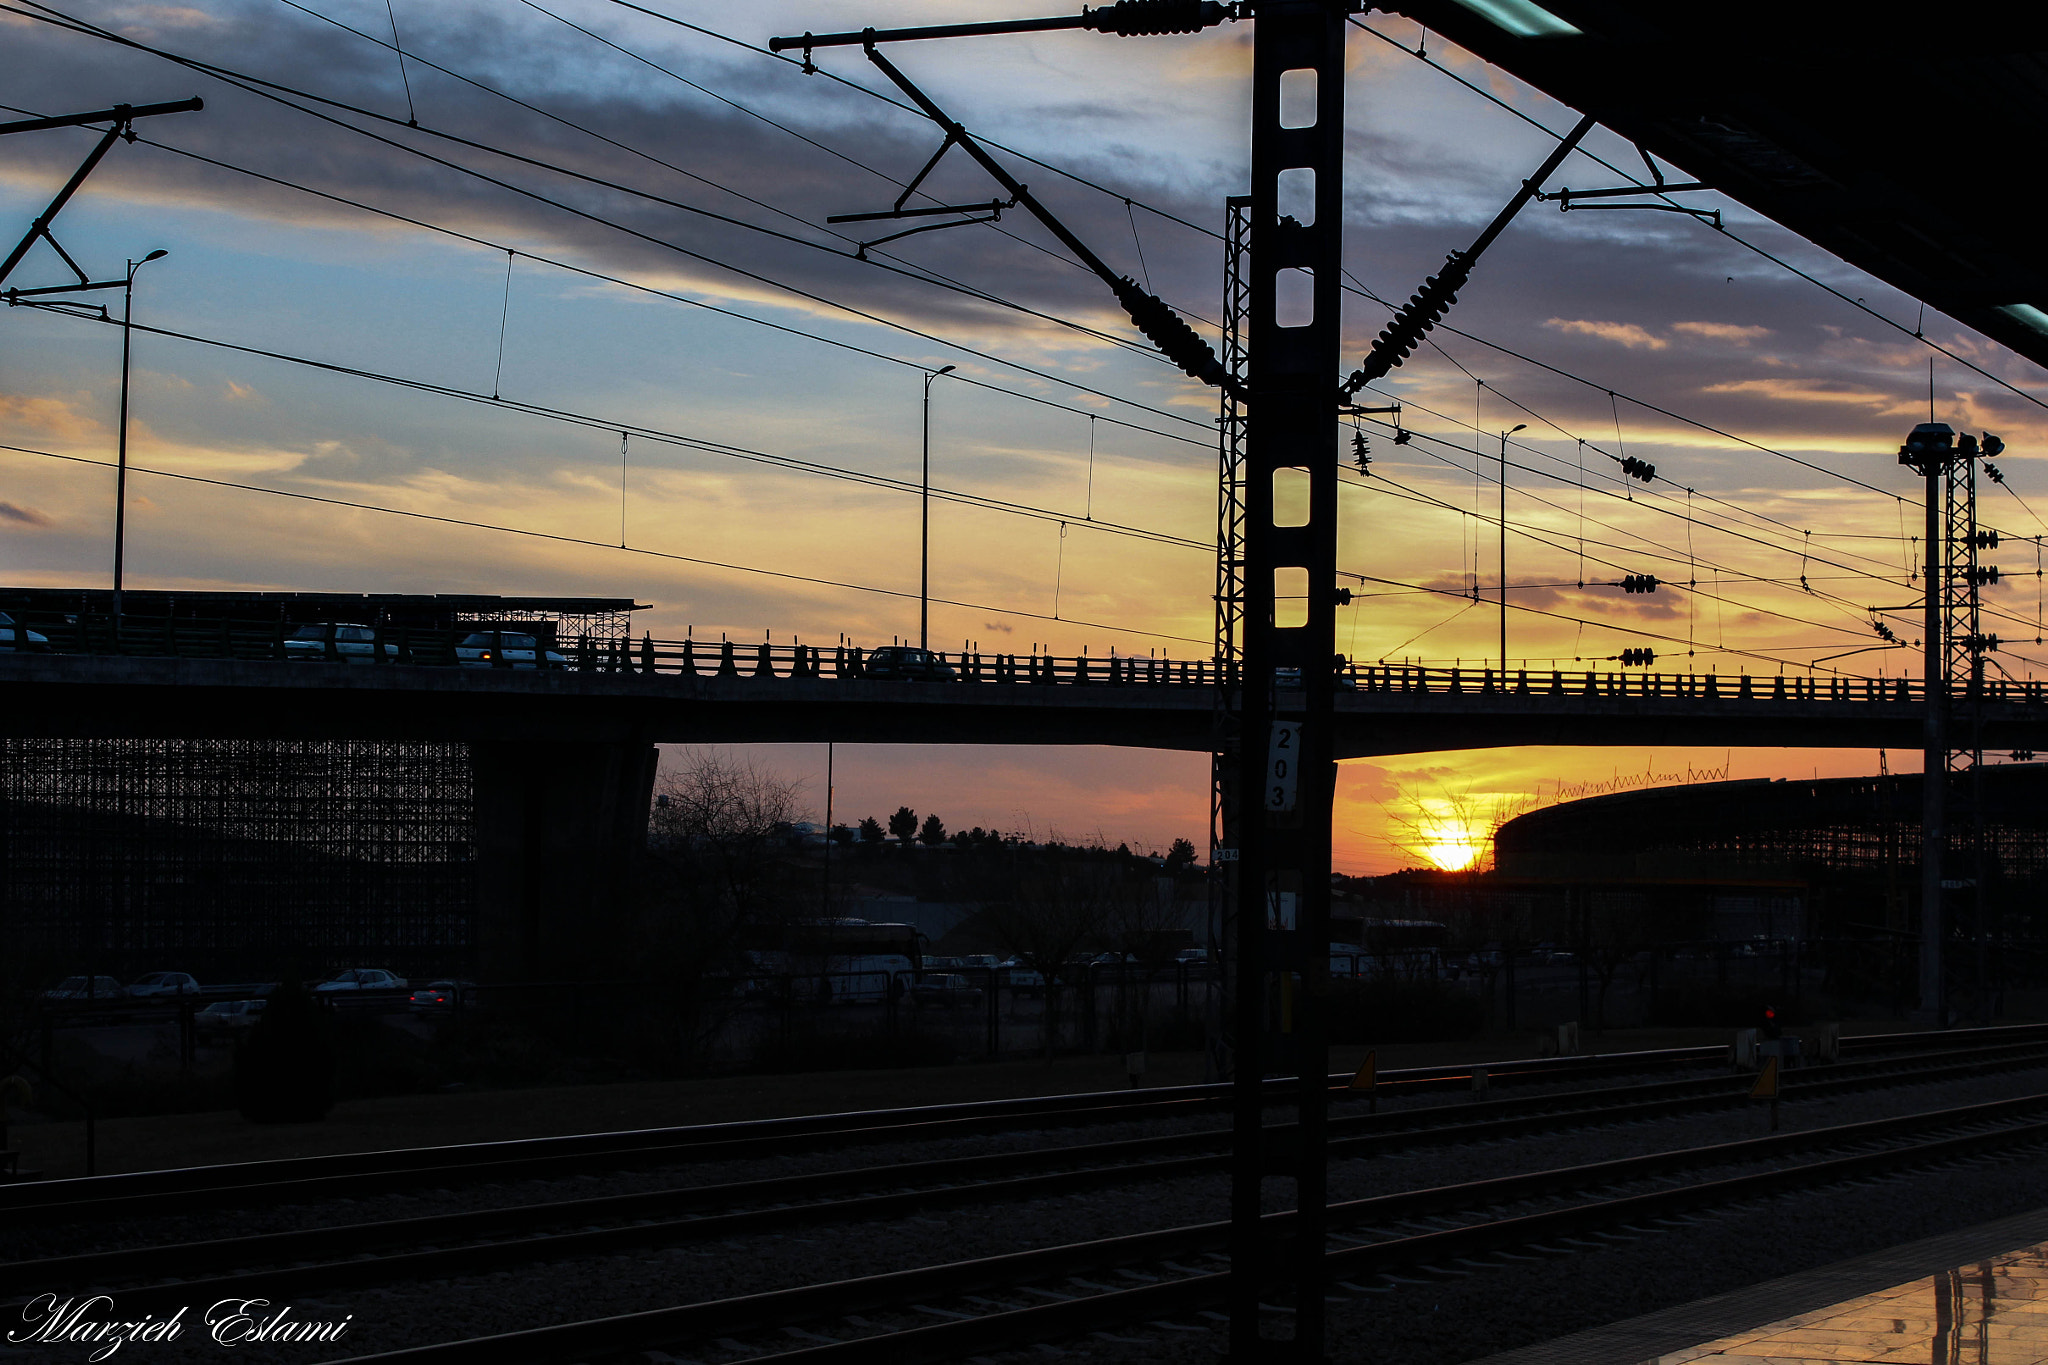 Photograph Sunset in metro station  by Marzieh Eslami on 500px